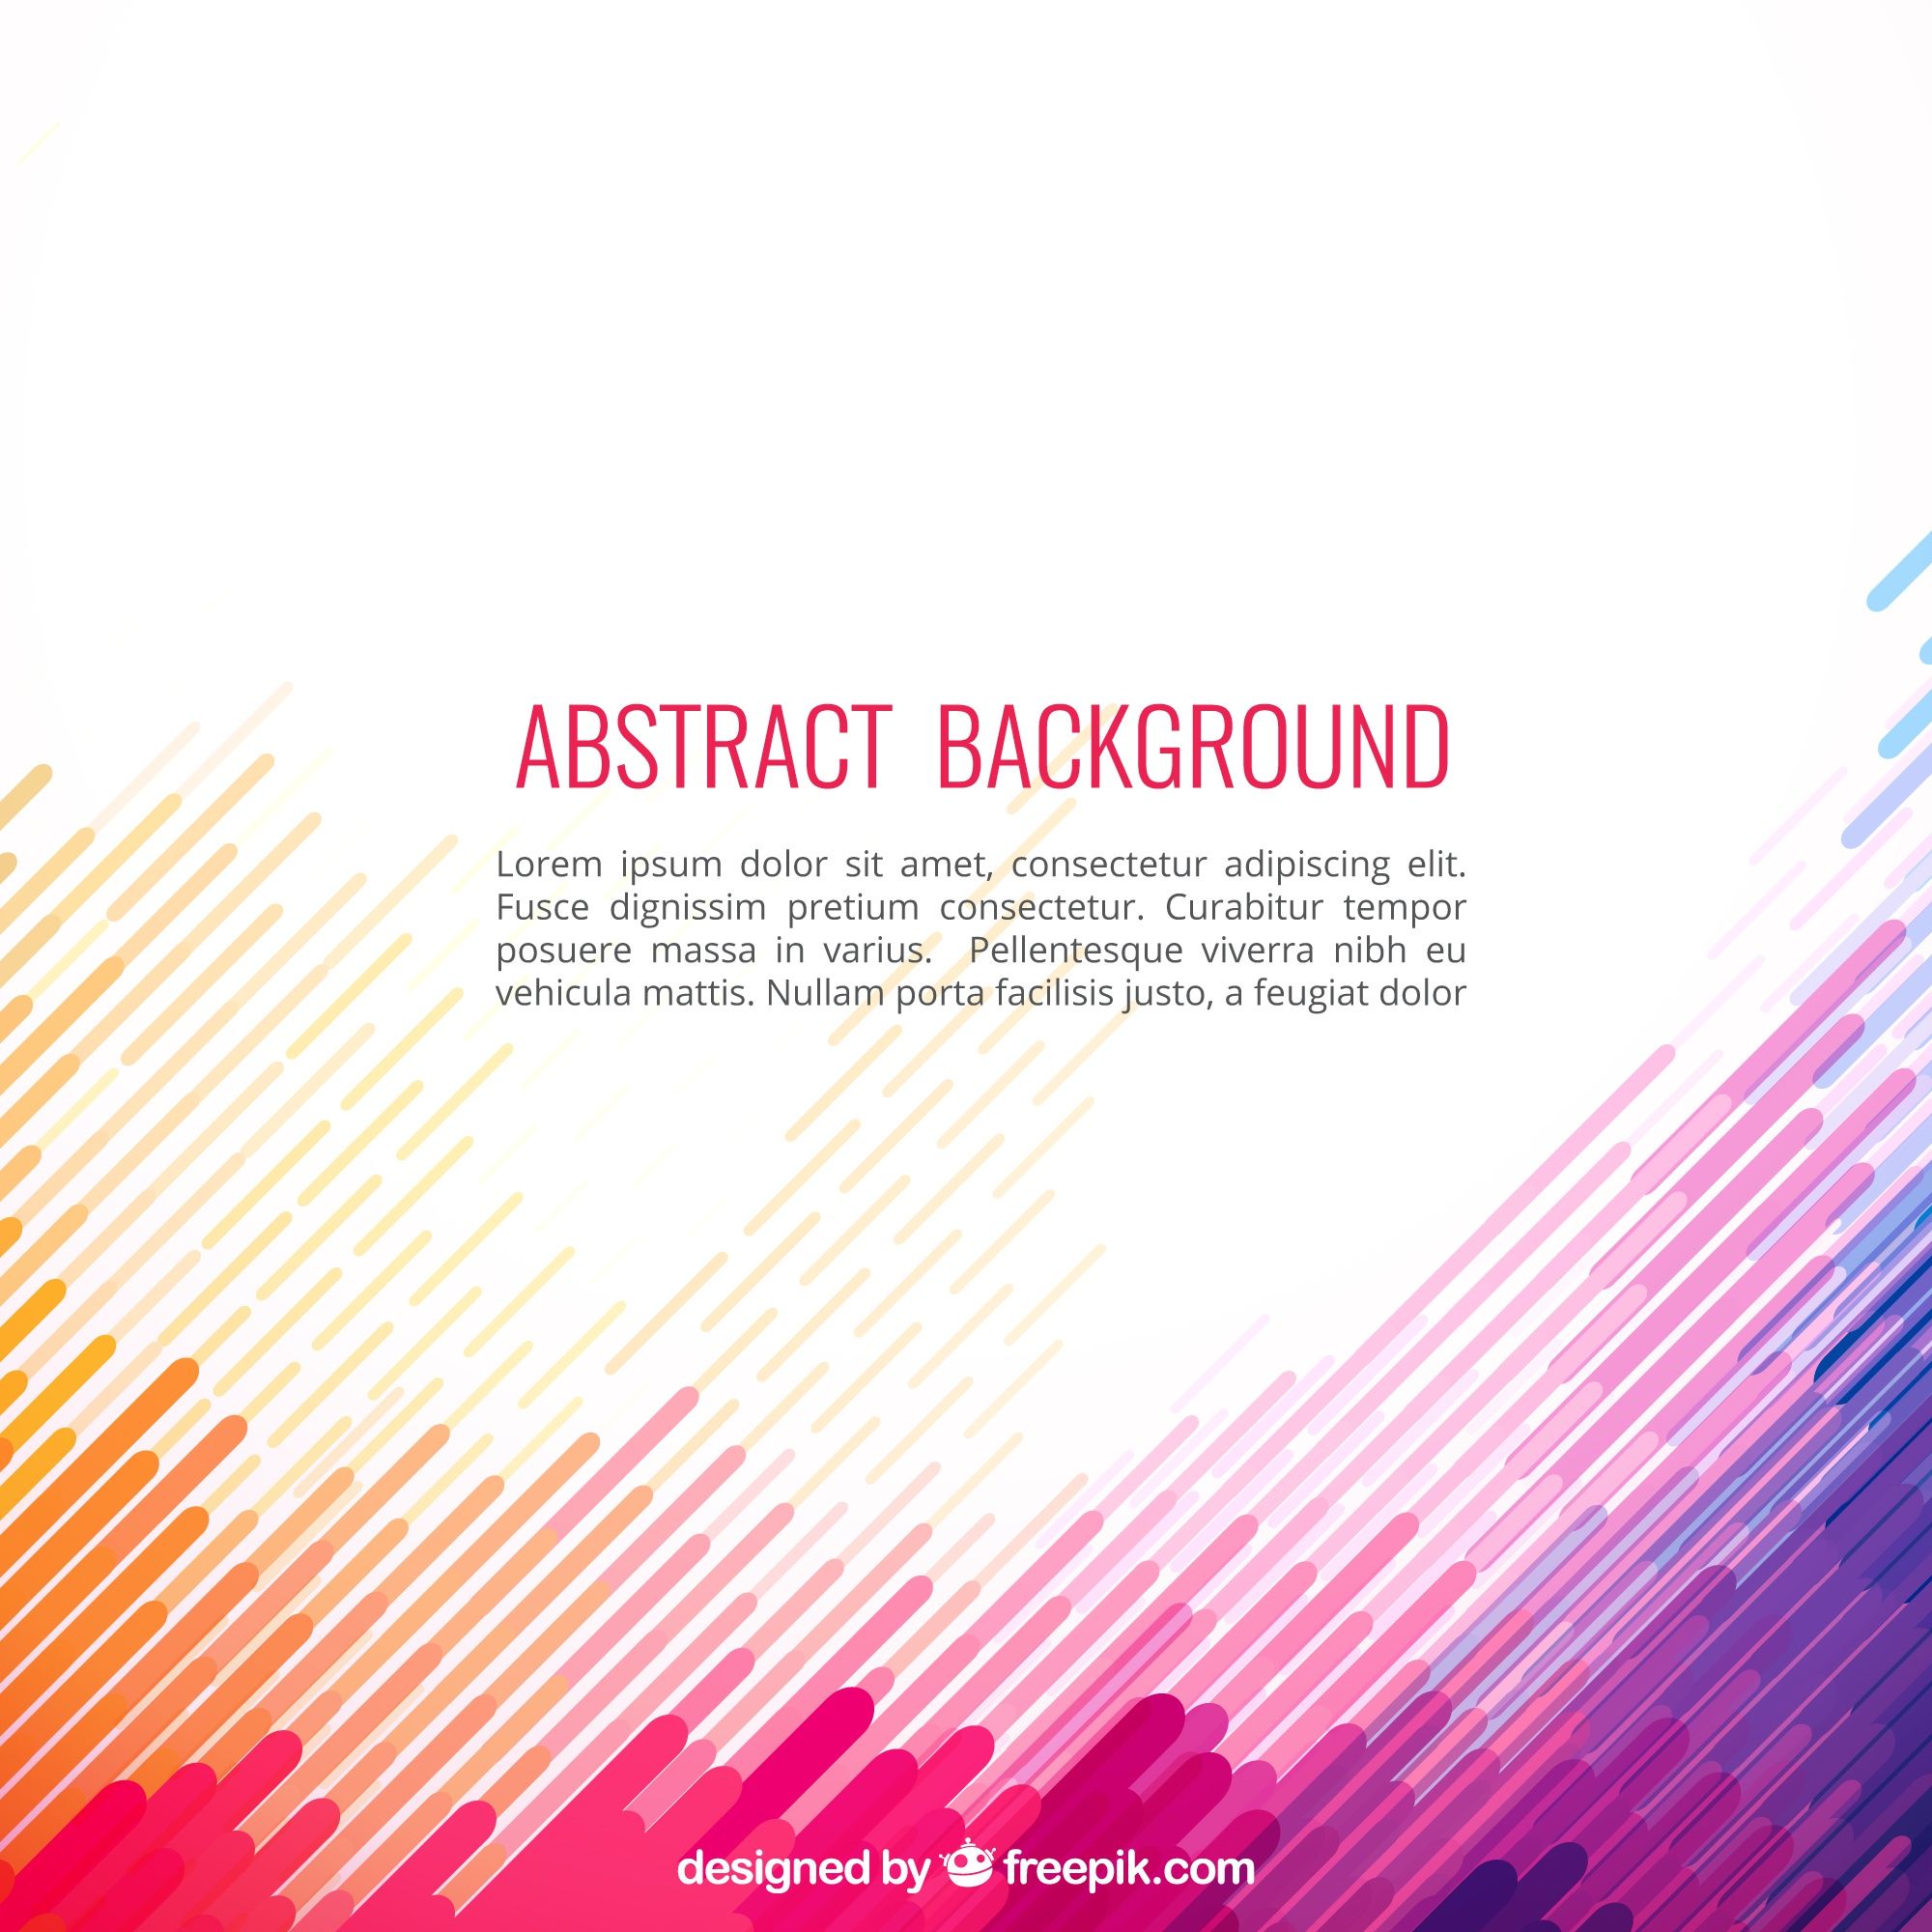 Abstract background in colorful style